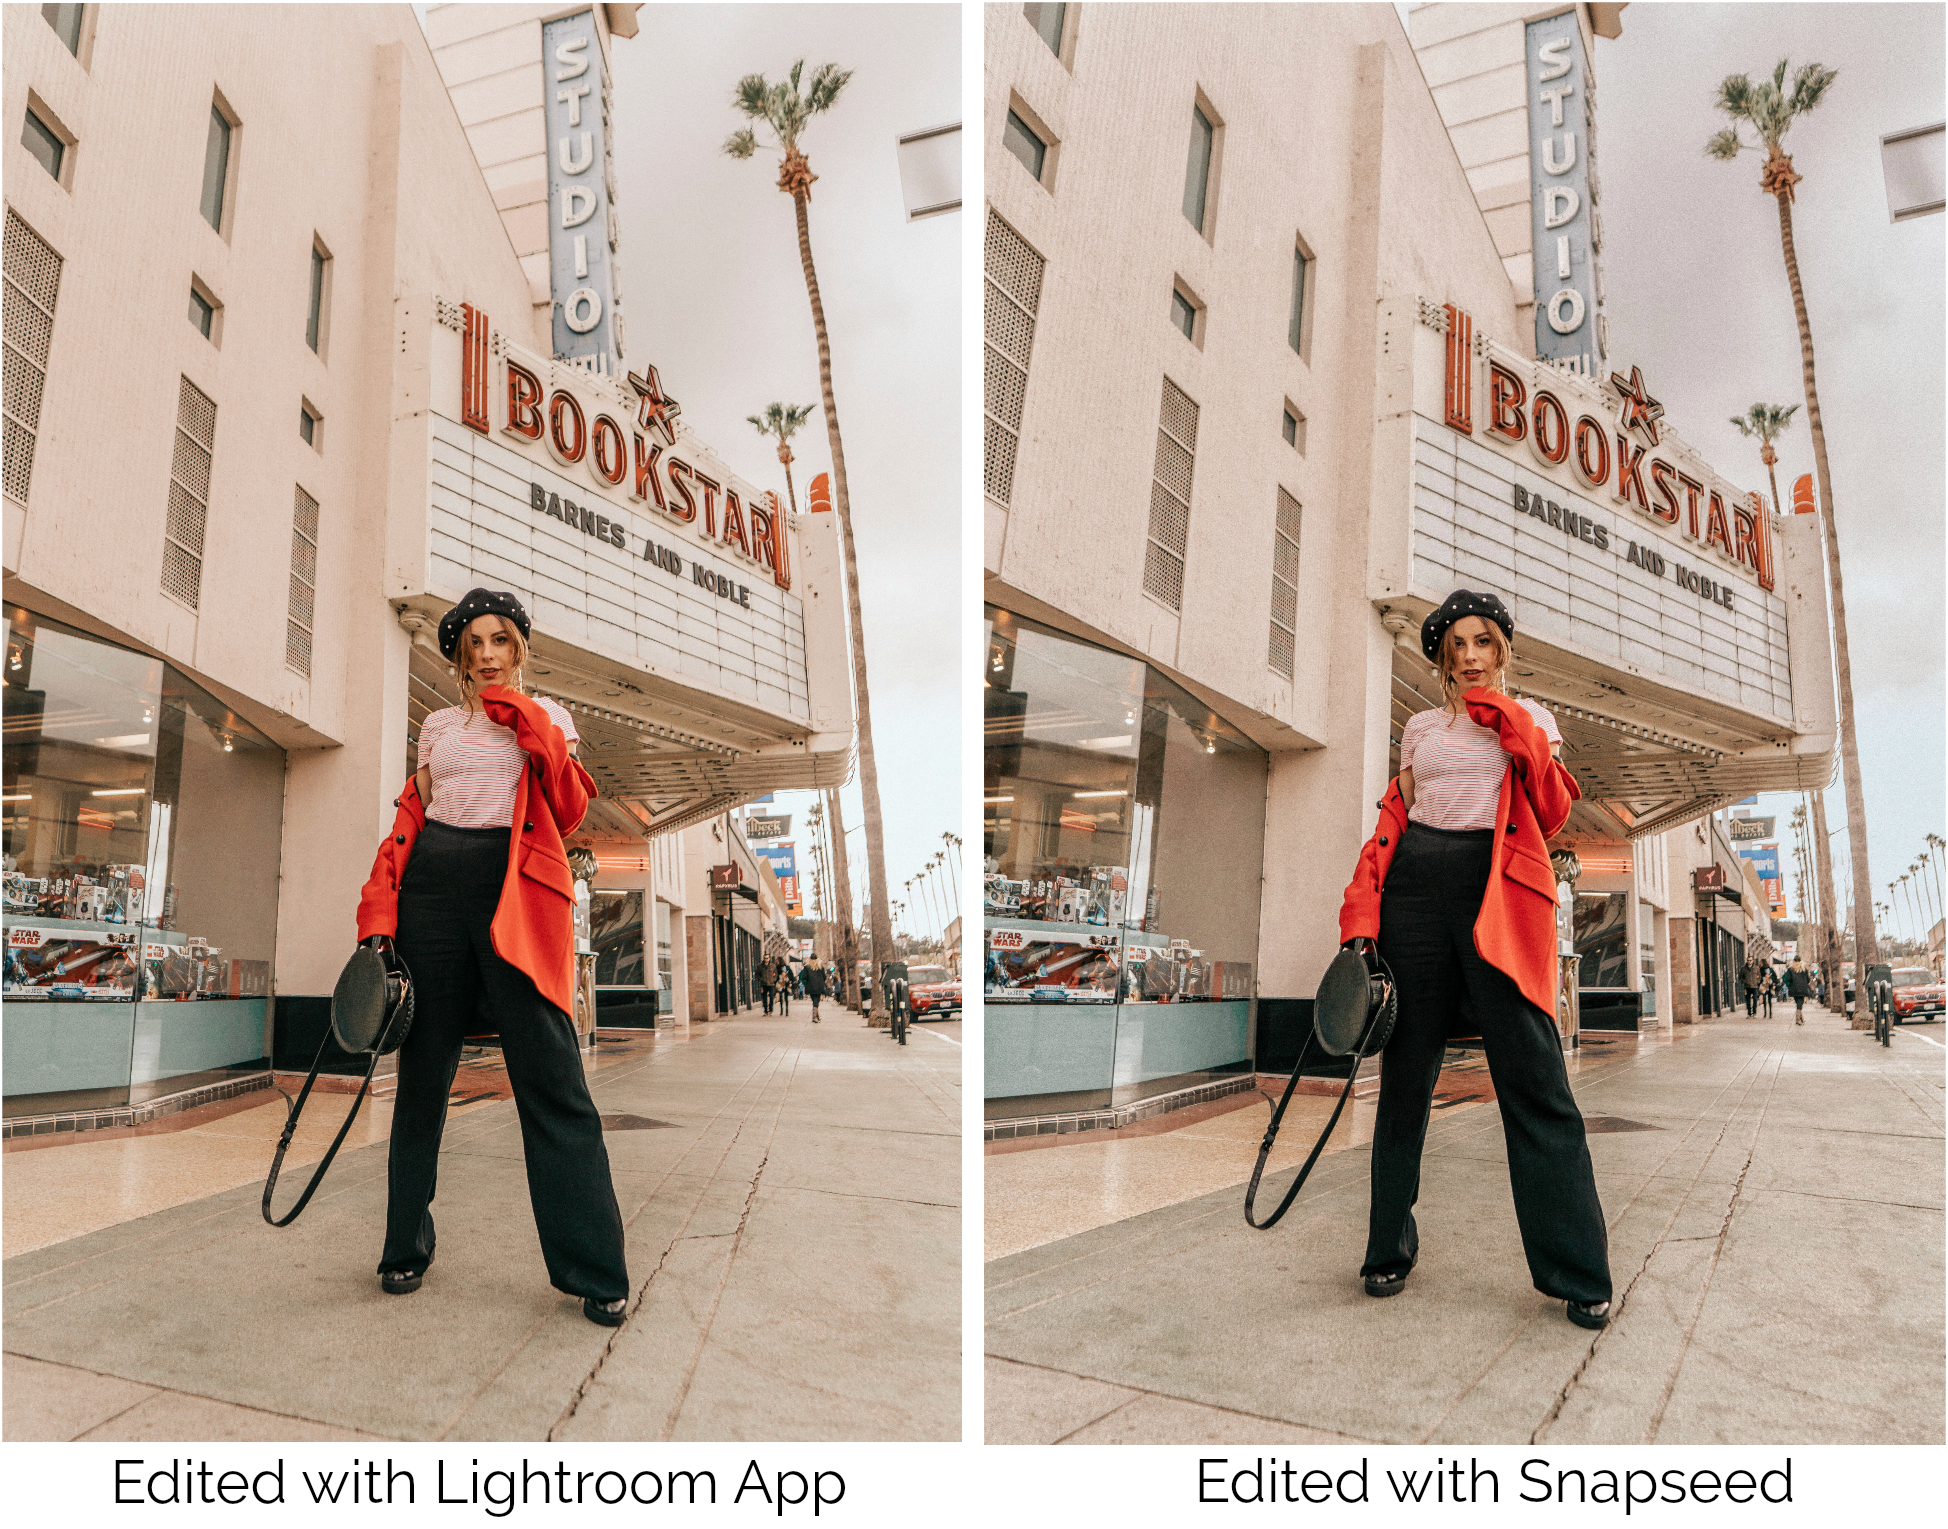 Emily Vartanian shares all her photo editing tips on how to get the best Instagram photos #instagram #photoediting #blogger